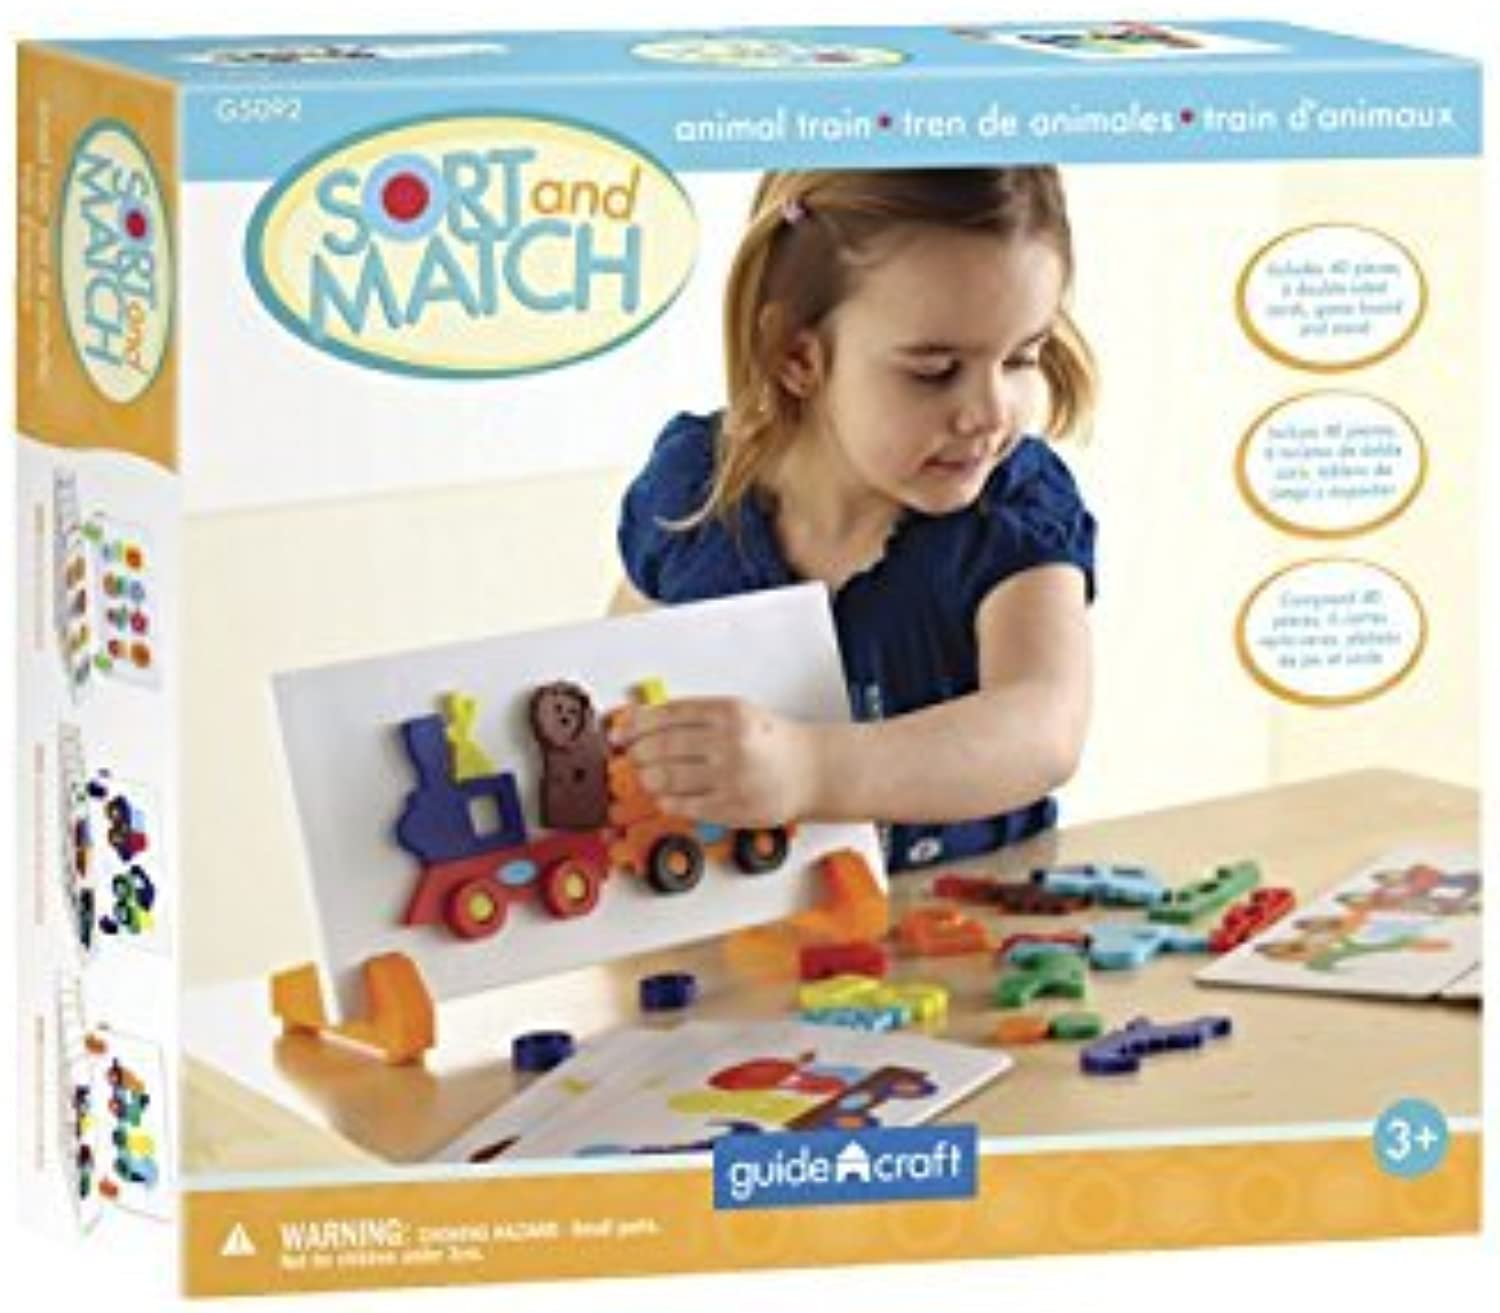 Guidecraft Animal Train Sort and Match by Guidecraft